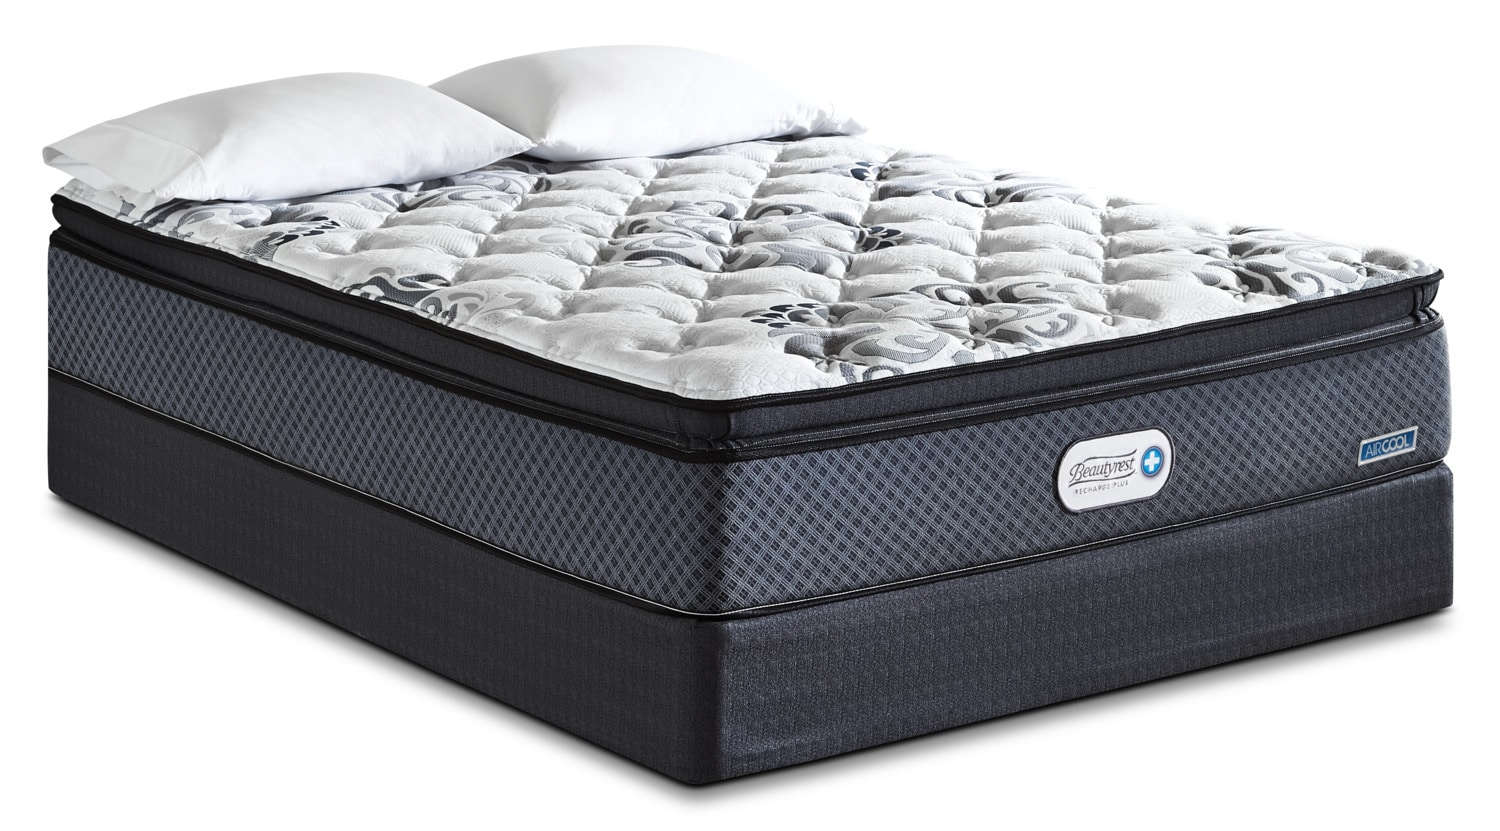 Beautyrest Recharge Plus Inspire Hi-Loft Pillow-Top Firm Queen Mattress Set